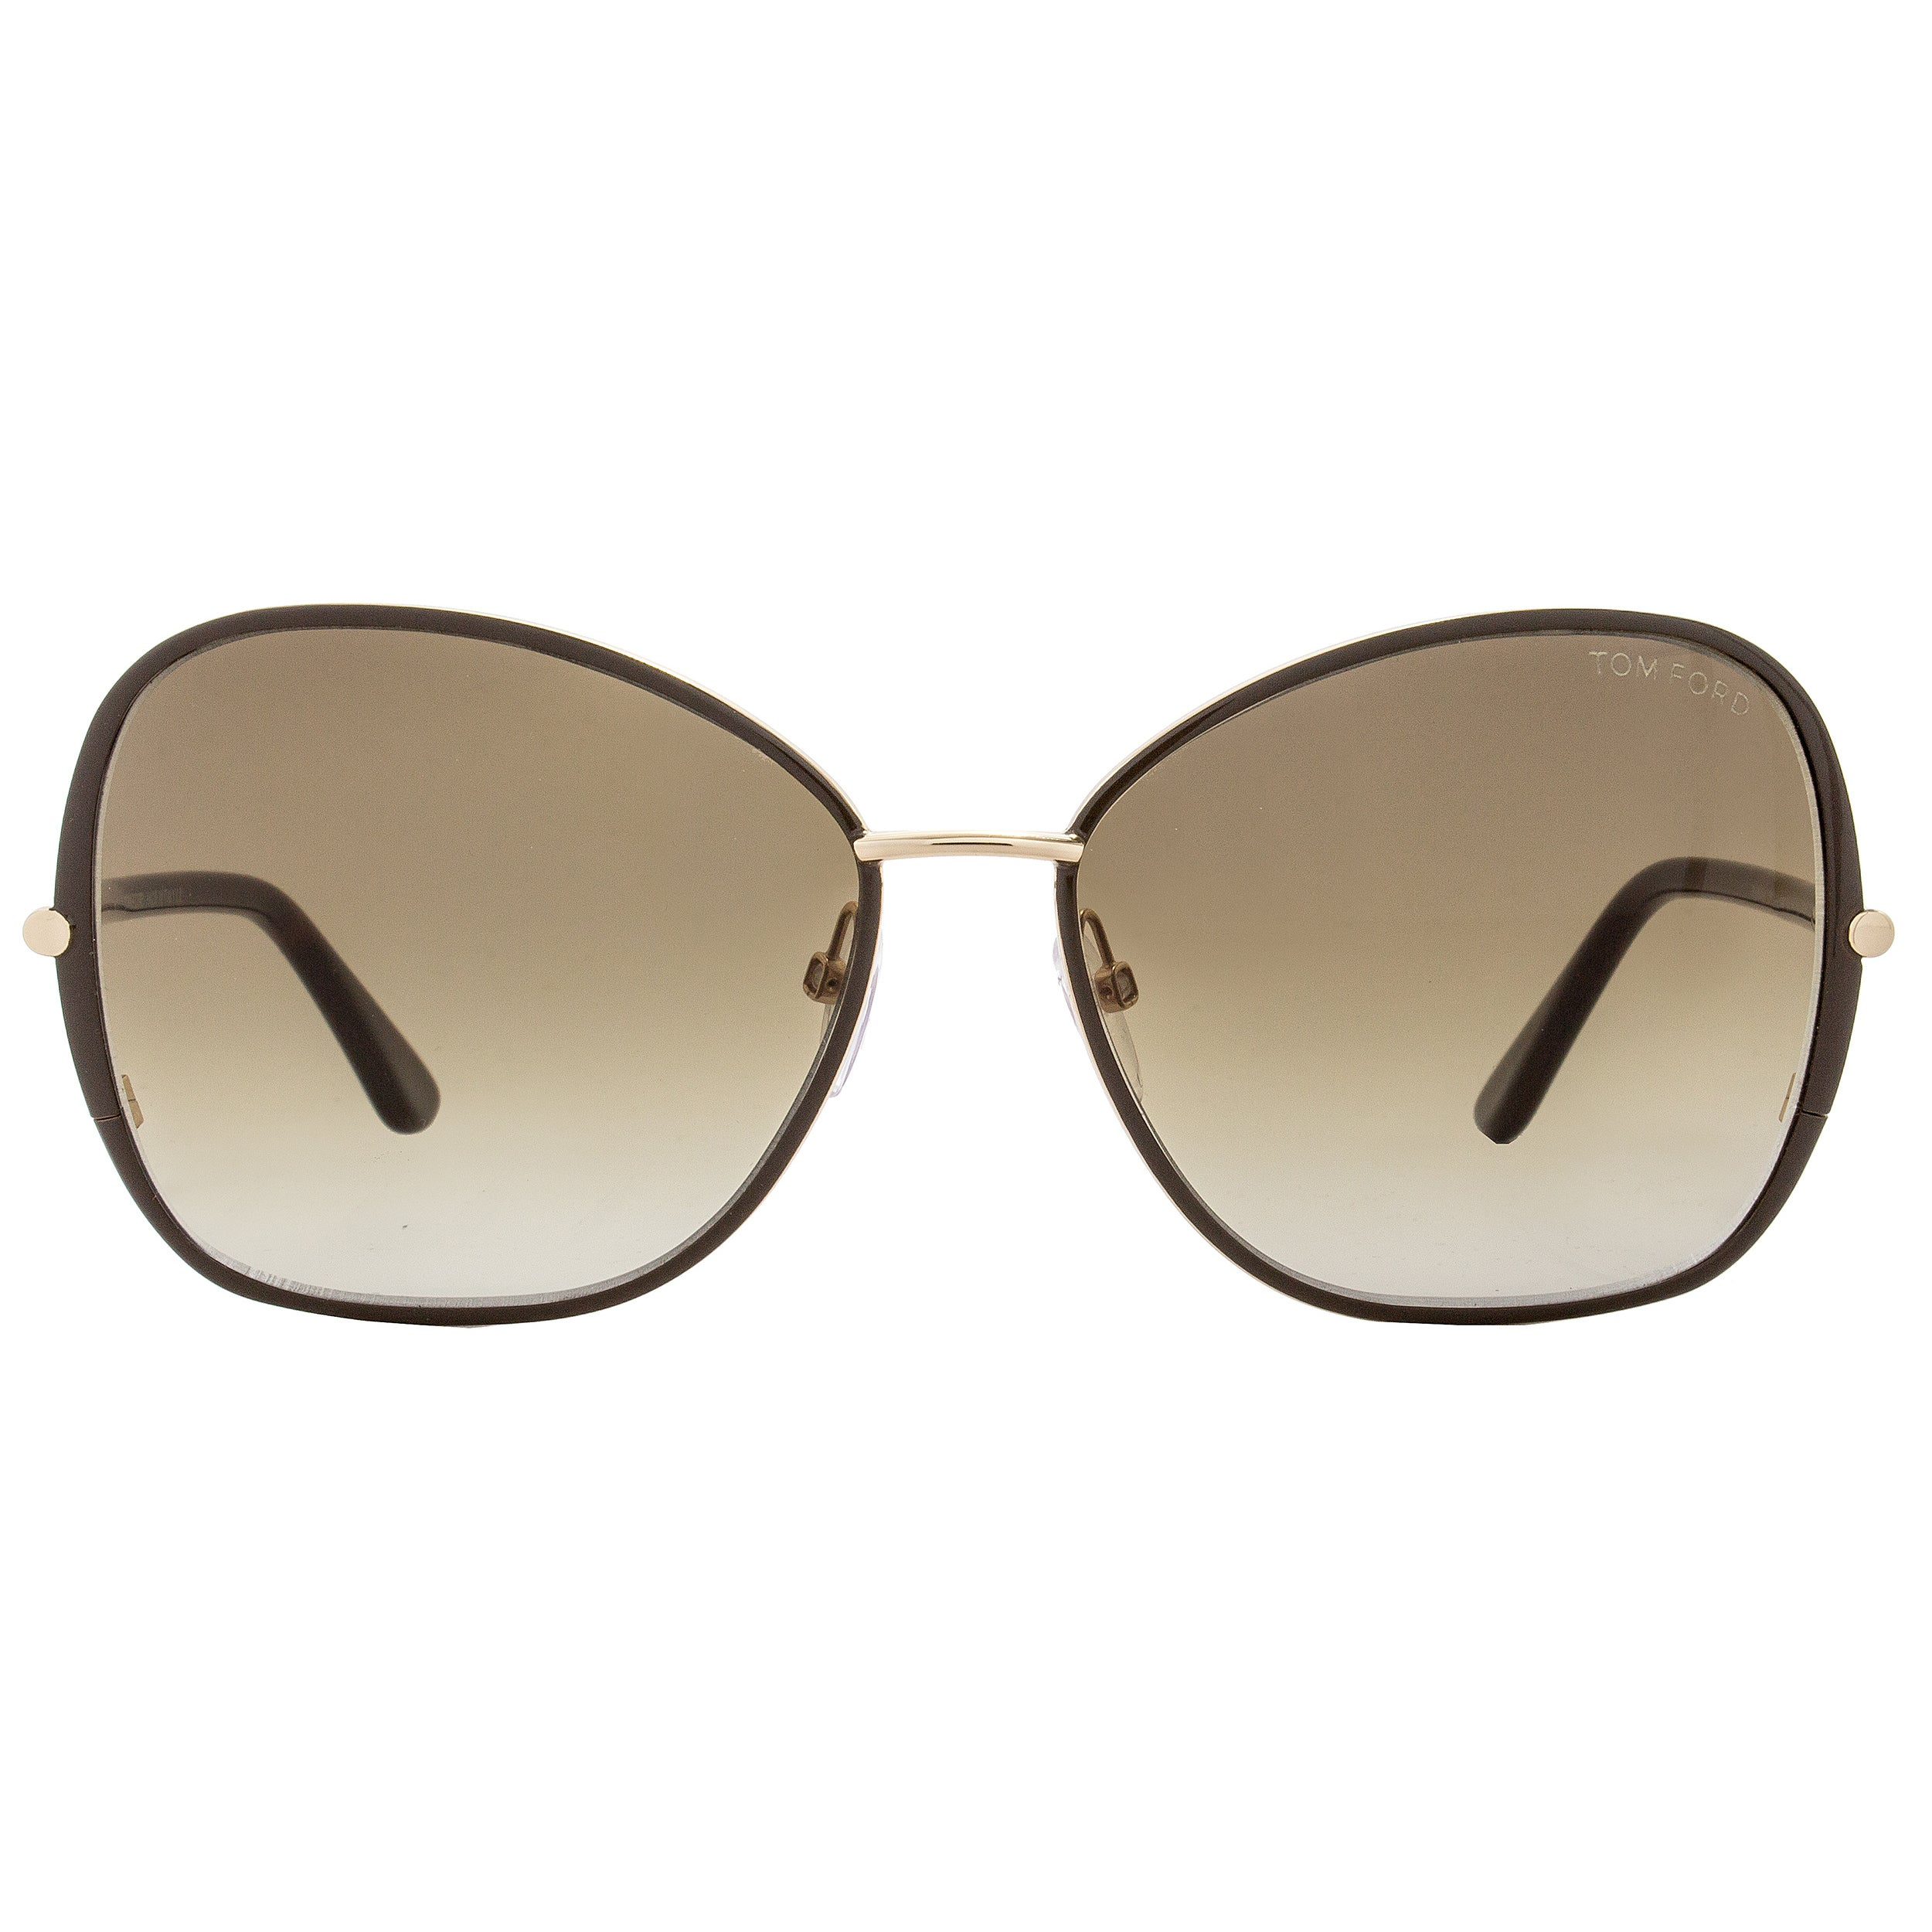 9c14fe84a66 Shop Tom Ford TF319 Solange 28F Women s Brown Gold Havana Brown Gradient  Lens Sunglasses - Ships To Canada - - 18153210